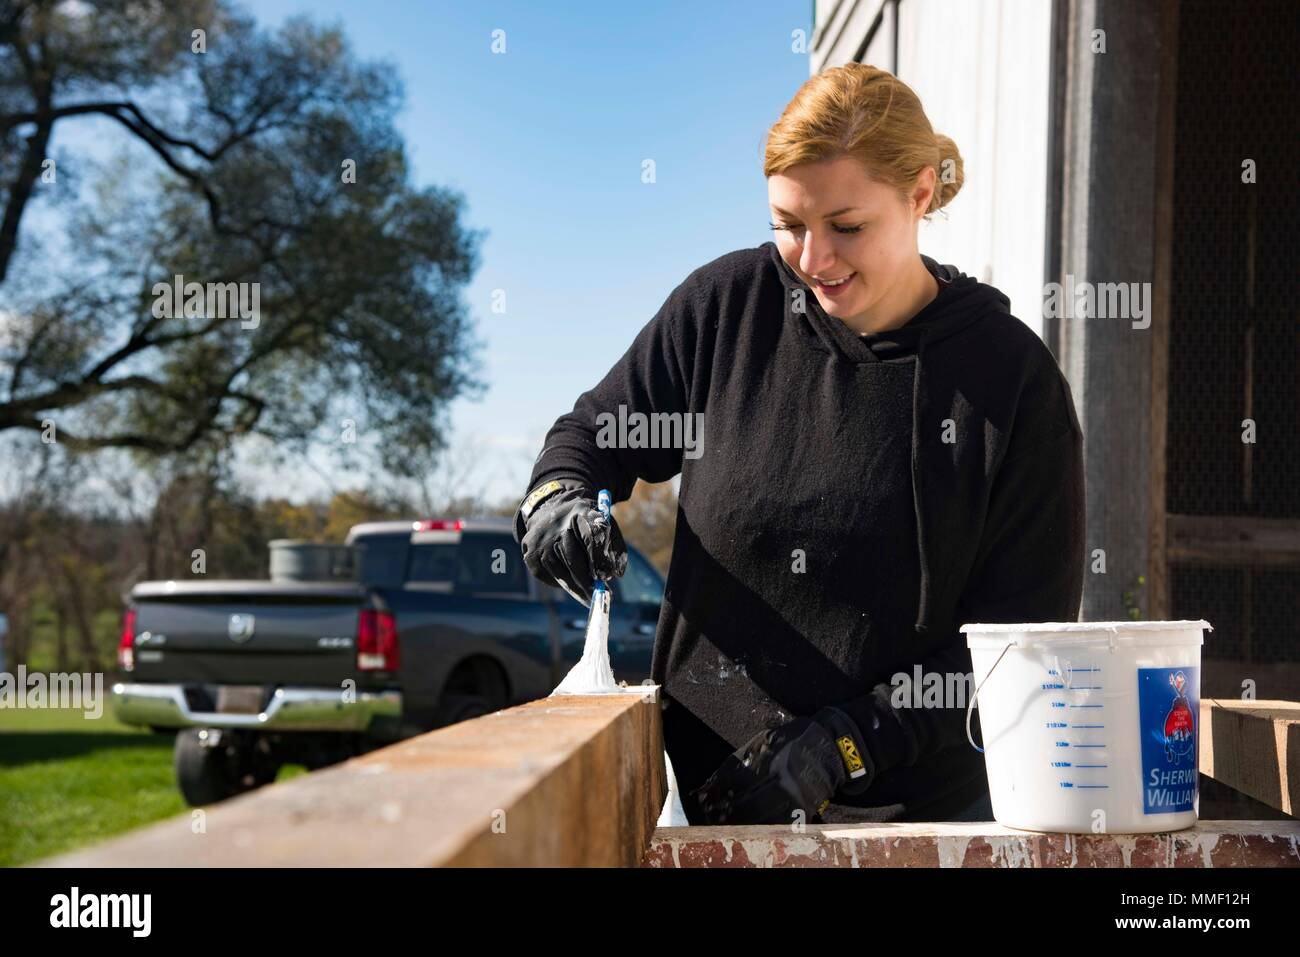 171031-N-FG807-189   GETTYSBURG, Pa. (Oct. 31, 2017) Quartermaster 3rd Class Taylor Miller, from Ravenna, Ohio, assigned to the aircraft carrier USS Dwight D. Eisenhower (CVN 69)(Ike), paints a fence post on the Dwight D. Eisenhower National Historic Site. Ike is undergoing a Planned Incremental Availability (PIA) at Norfolk Naval Shipyard during the maintenance phase of the Optimized Fleet Response Plan (OFRP).  (U.S. Navy photo by Mass Communication Specialist 3rd Class Devin Alexondra Lowe) Stock Photo